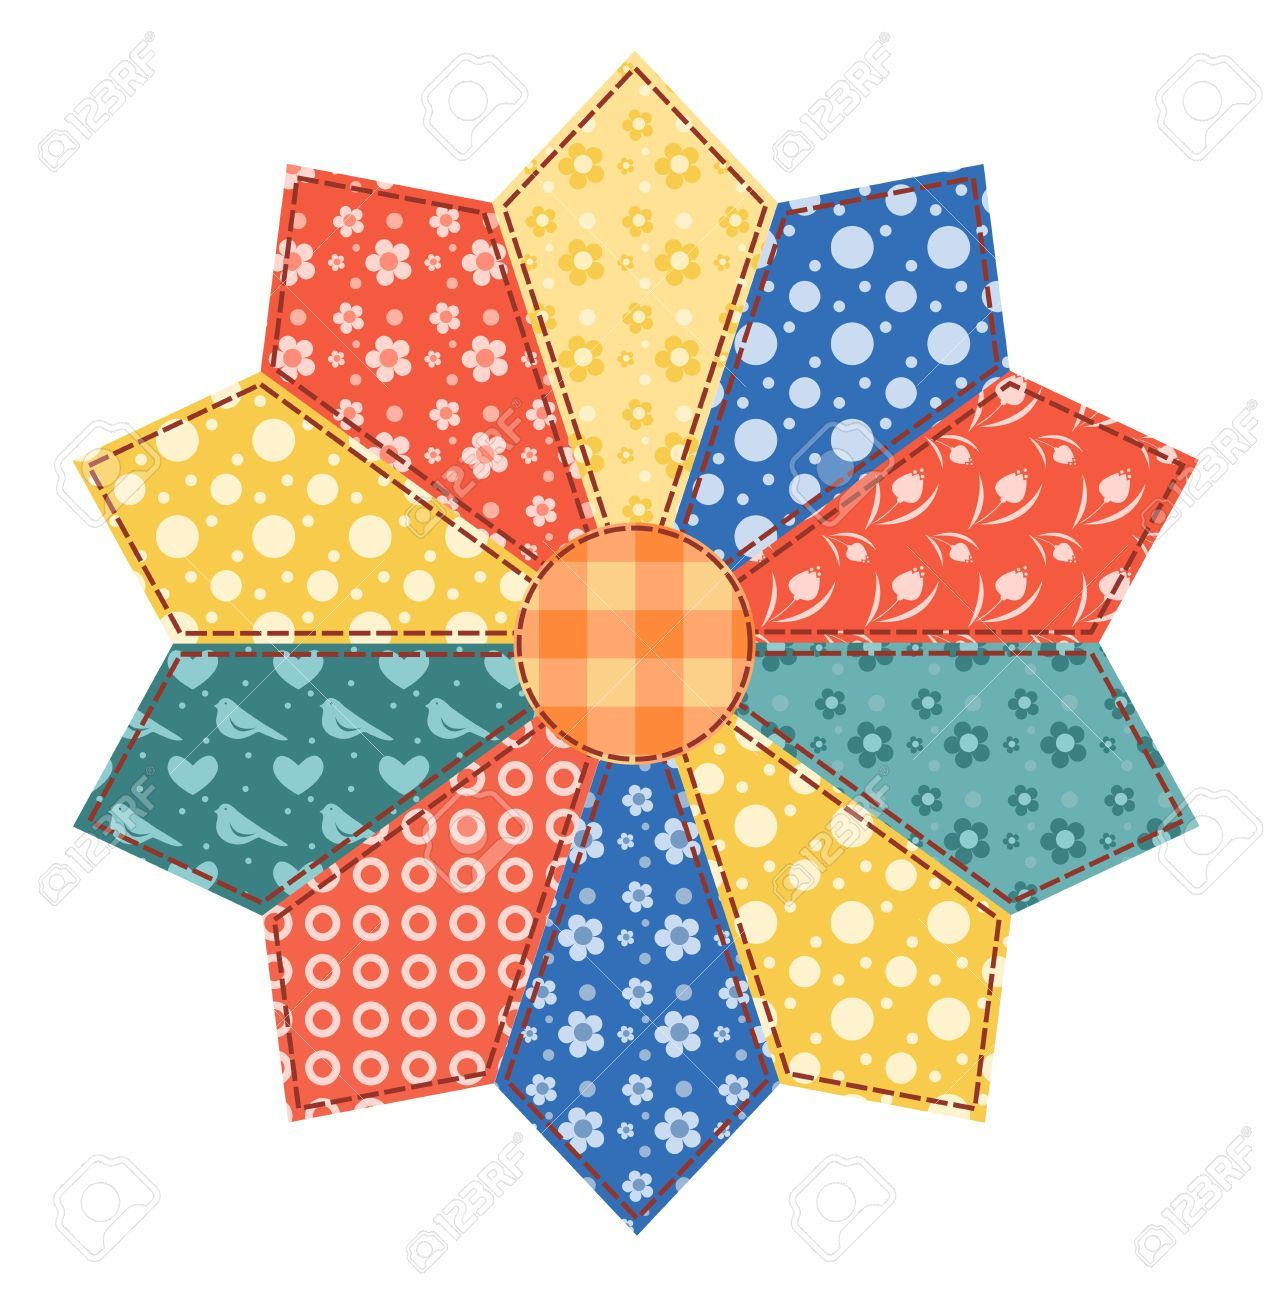 Stock illustrations cliparts and. Quilting clipart quilt pattern